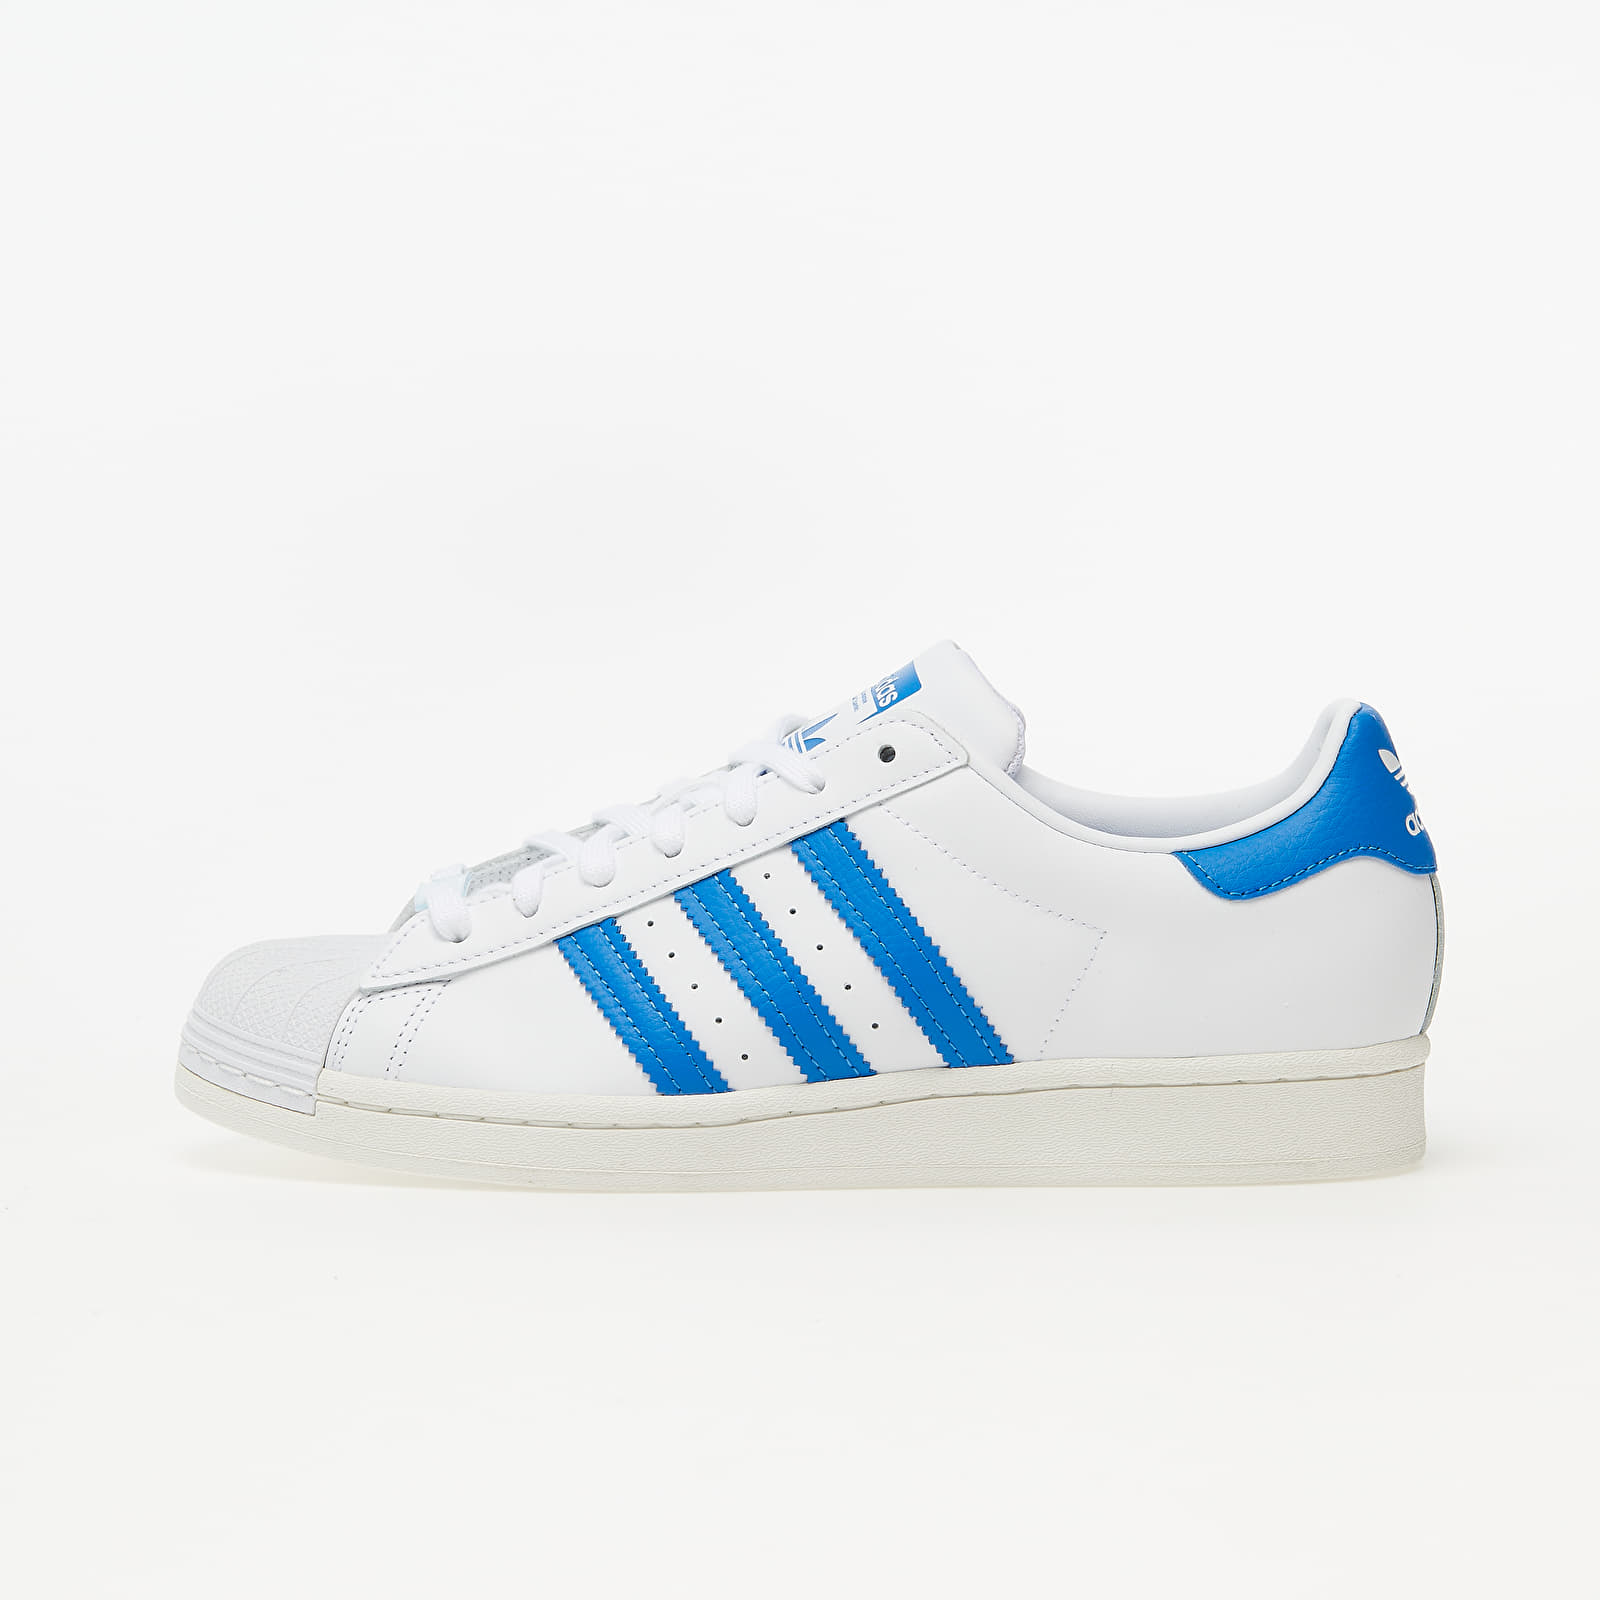 adidas Superstar Ftw White/ Blue Bird/ Off White EUR 42